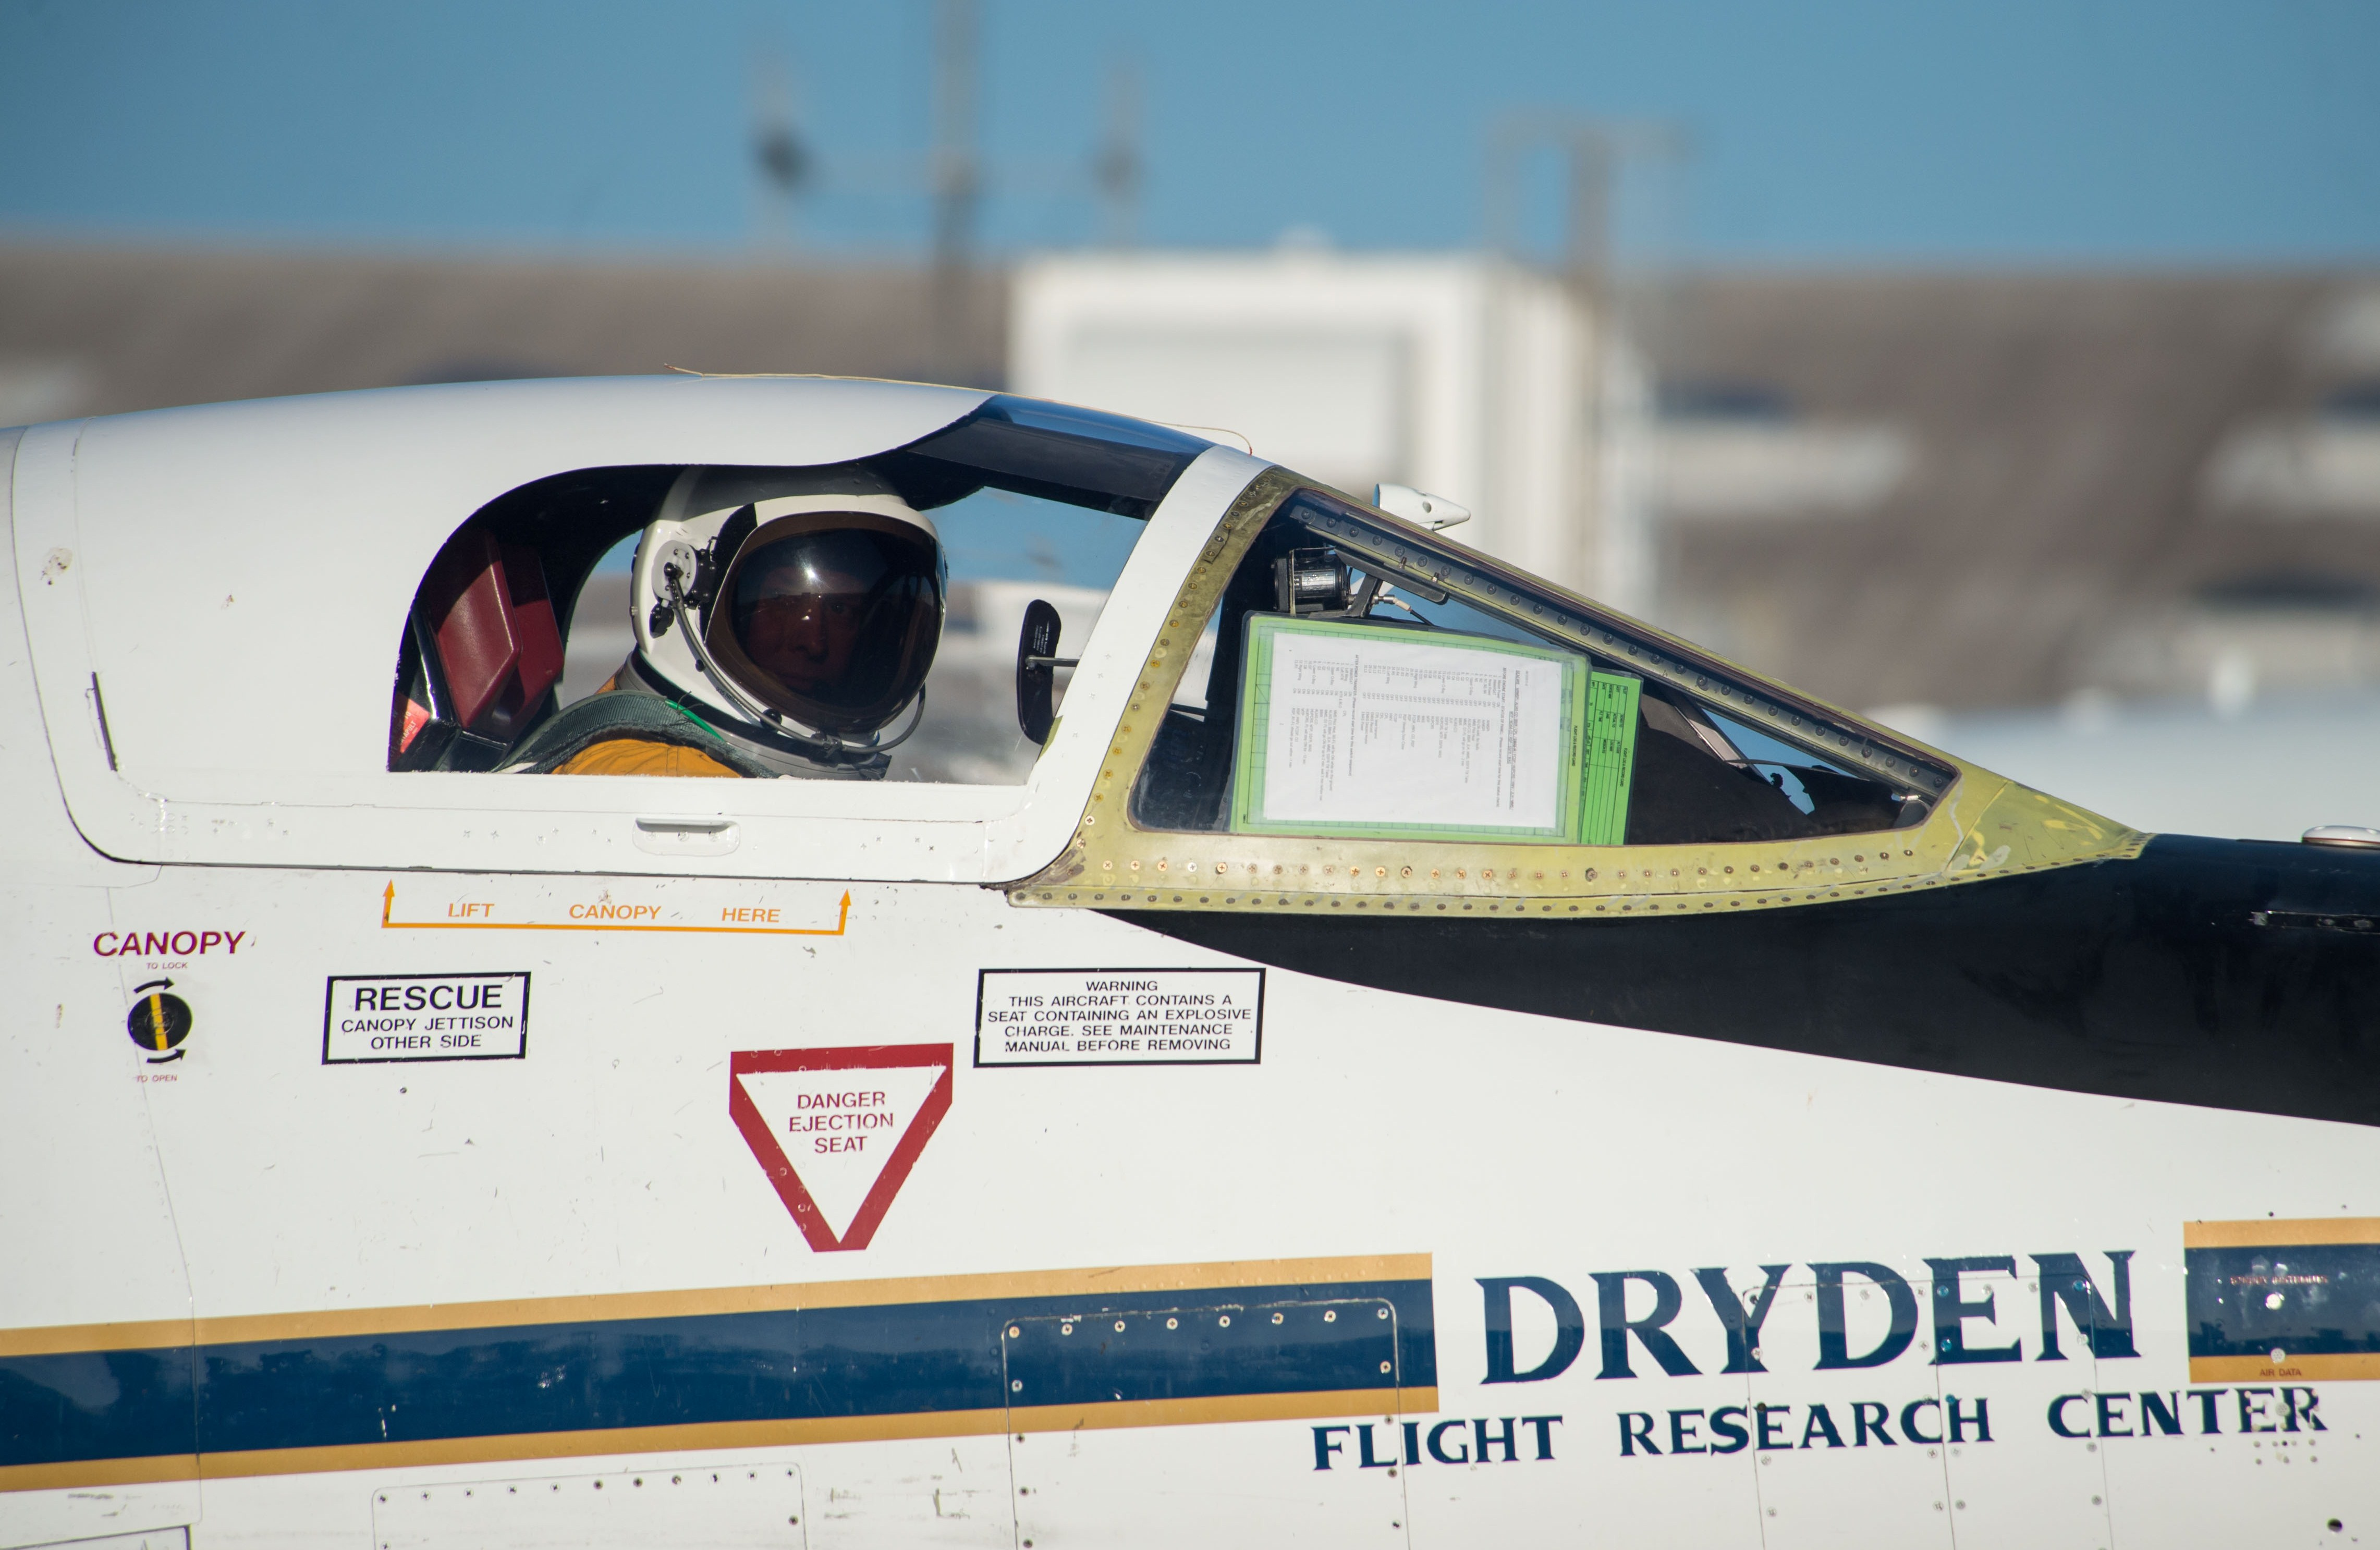 ER-2 pilot in pressurized suit prepares for Aug. 12 SEAC4RS flight. Image Credit: NASA / James Blair